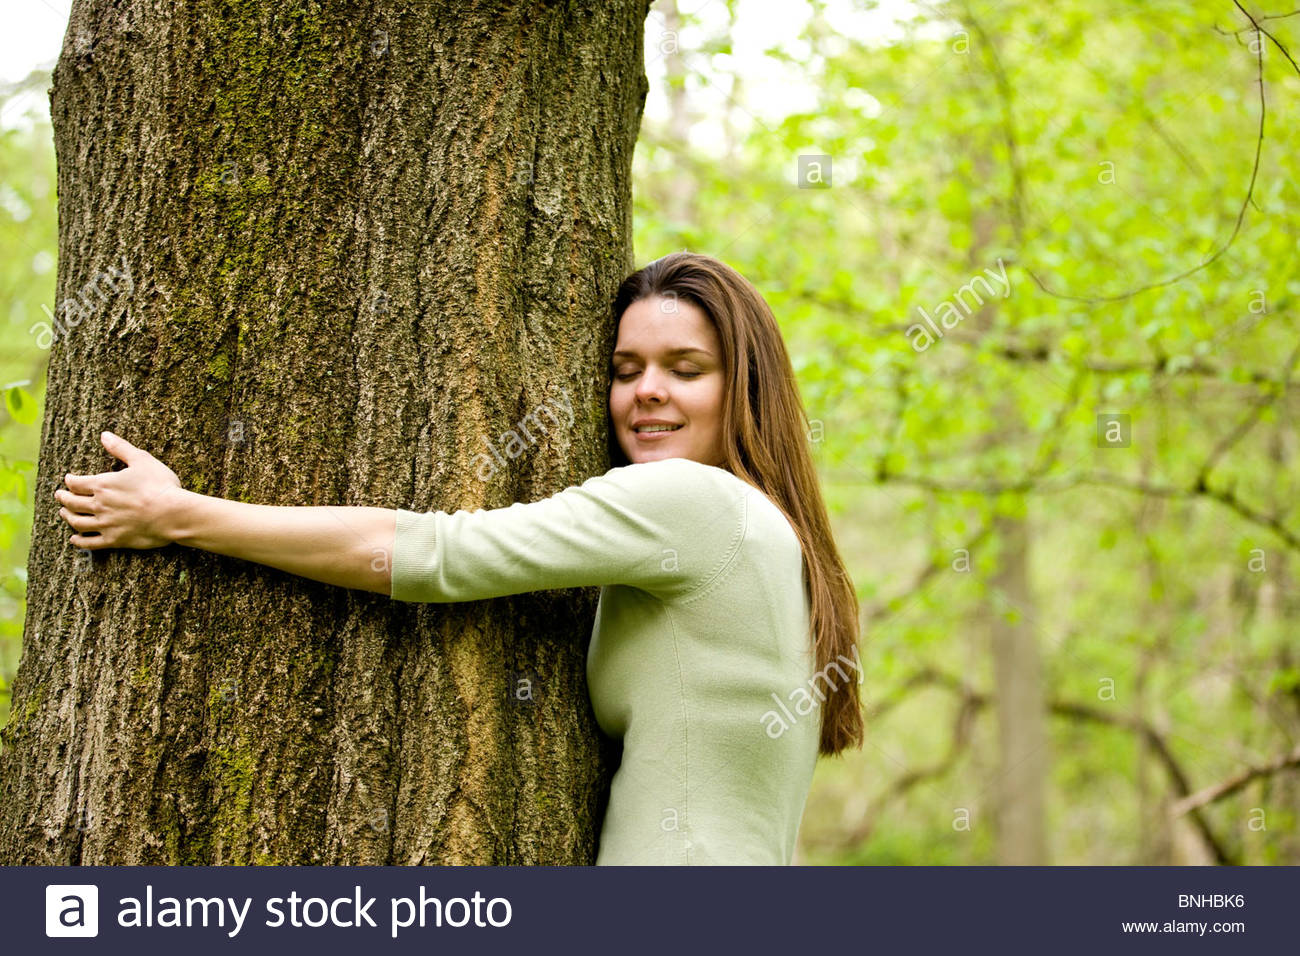 A young woman hugging a tree - Stock Image